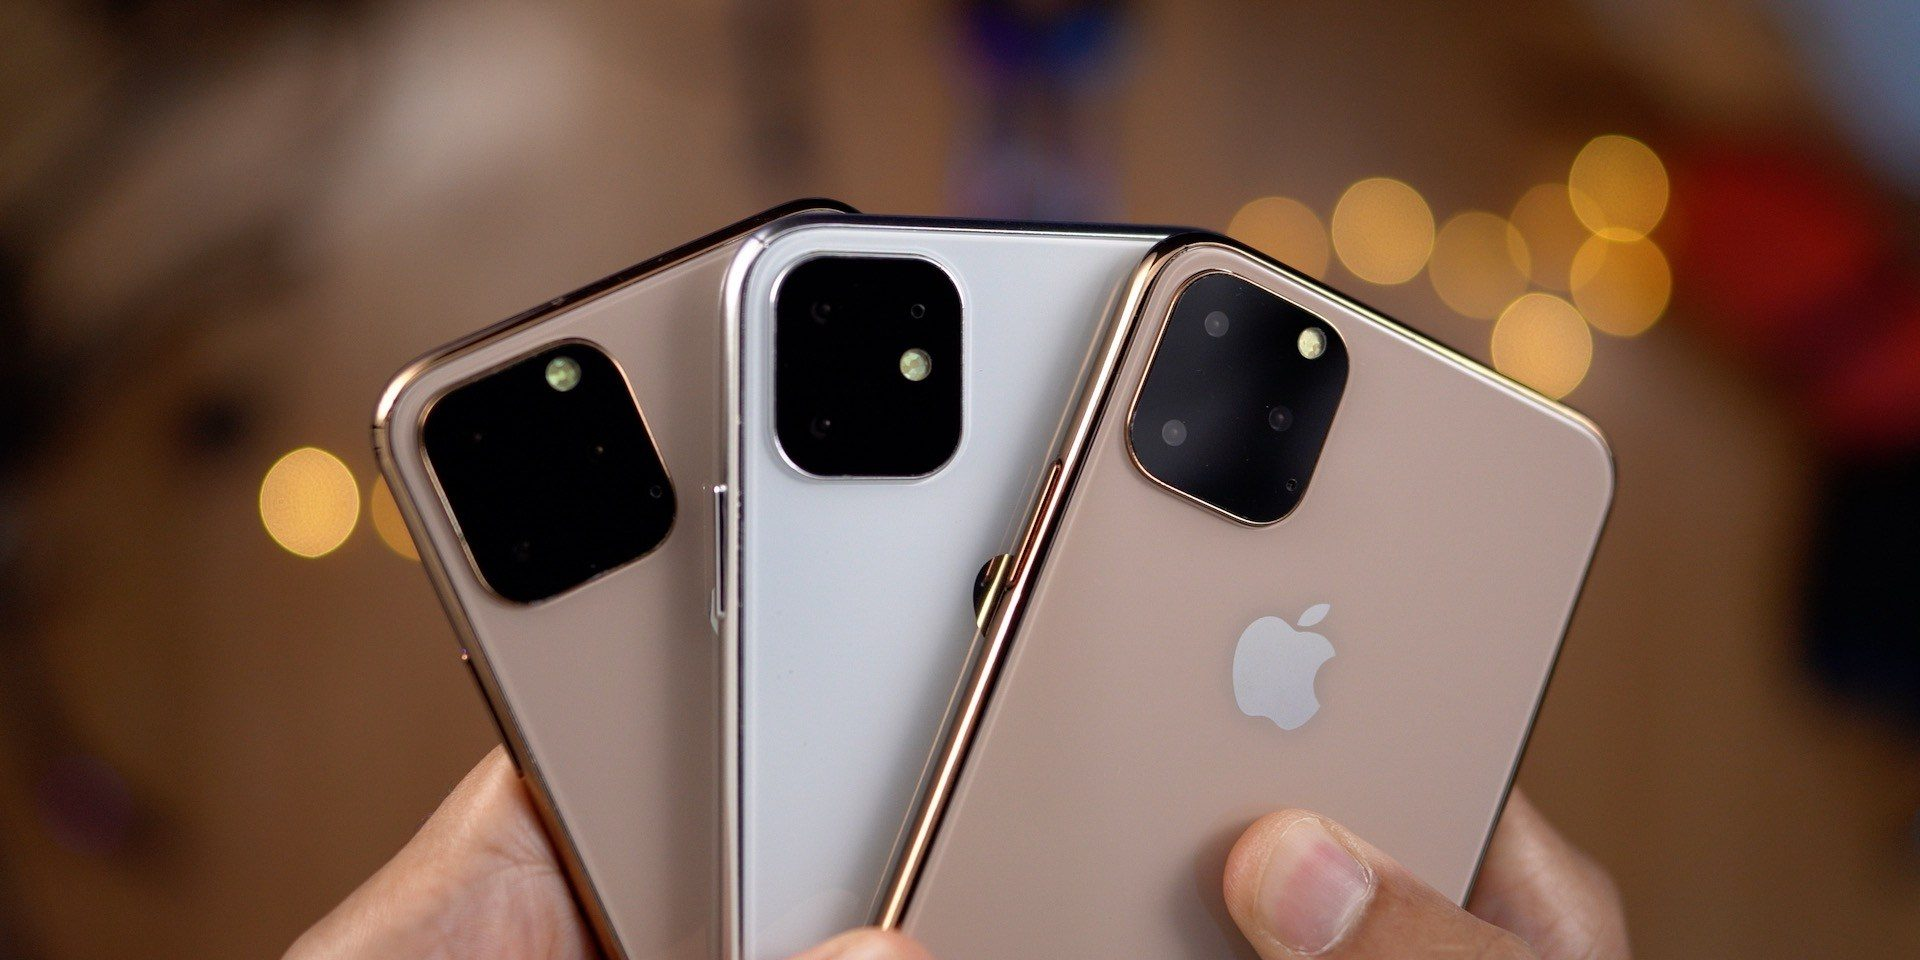 Report: Apple to release three new iPhone models with a trio of rear cameras